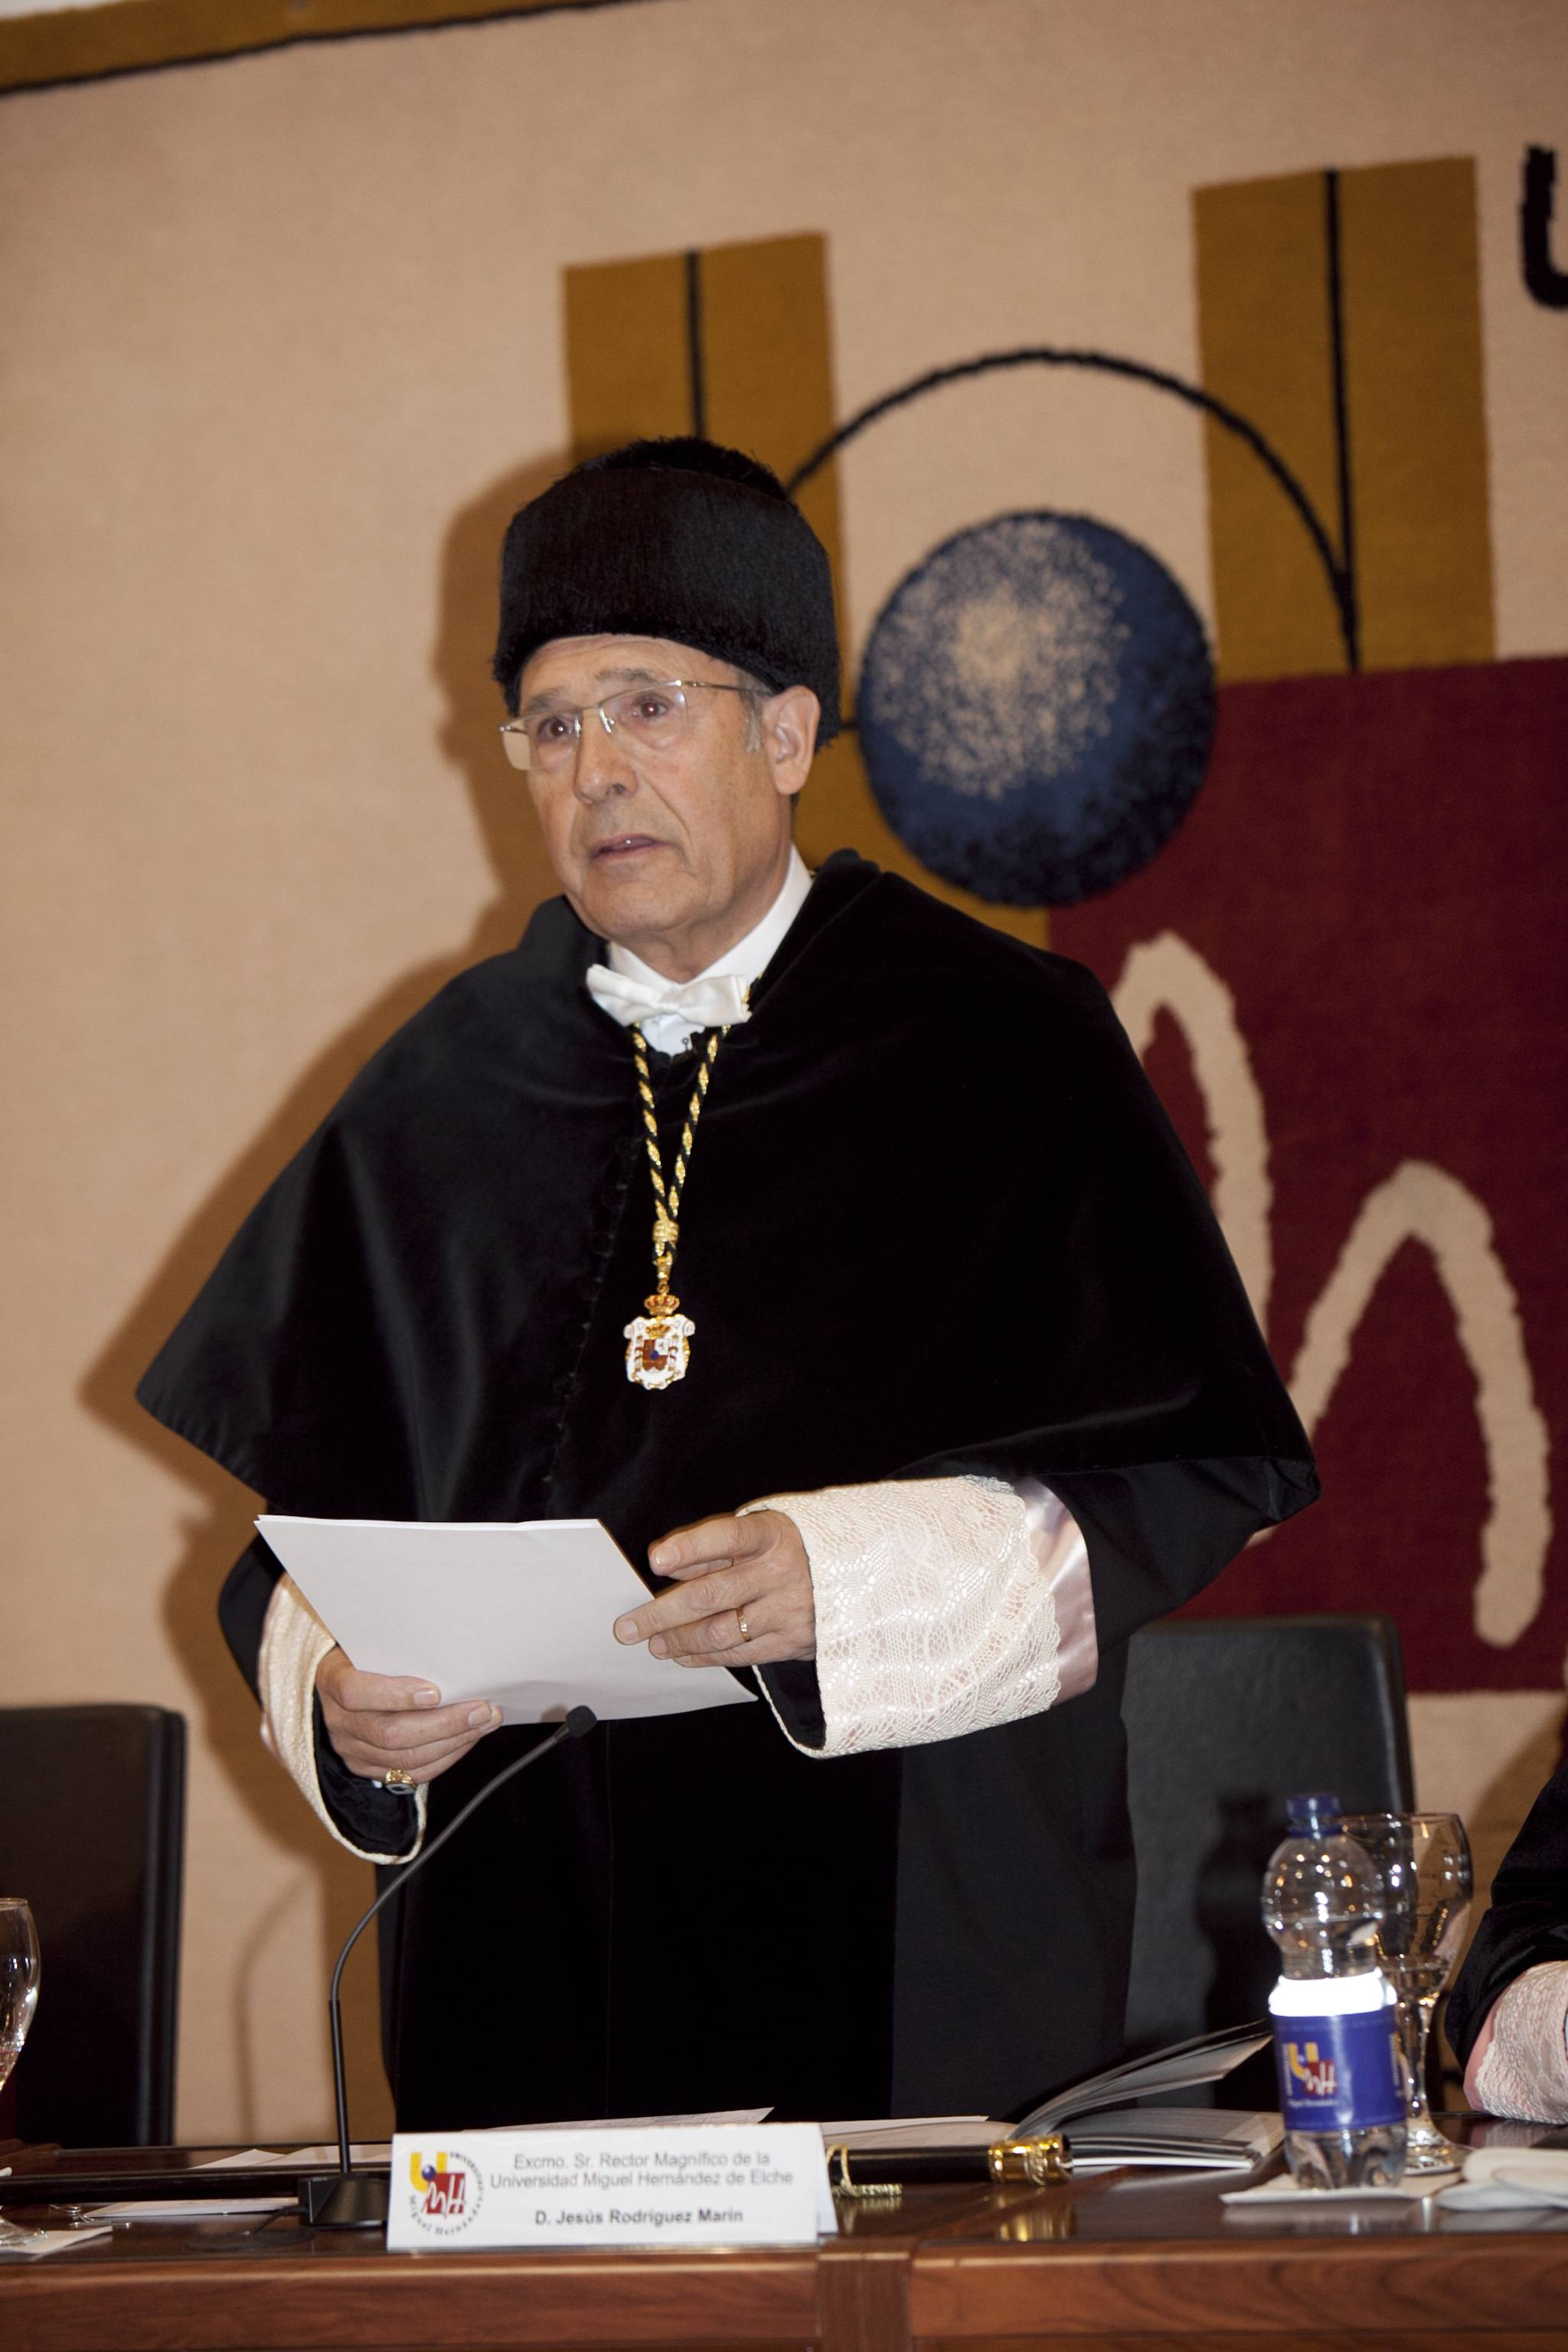 doctor-honoris-causa-luis-gamir_mg_1238.jpg